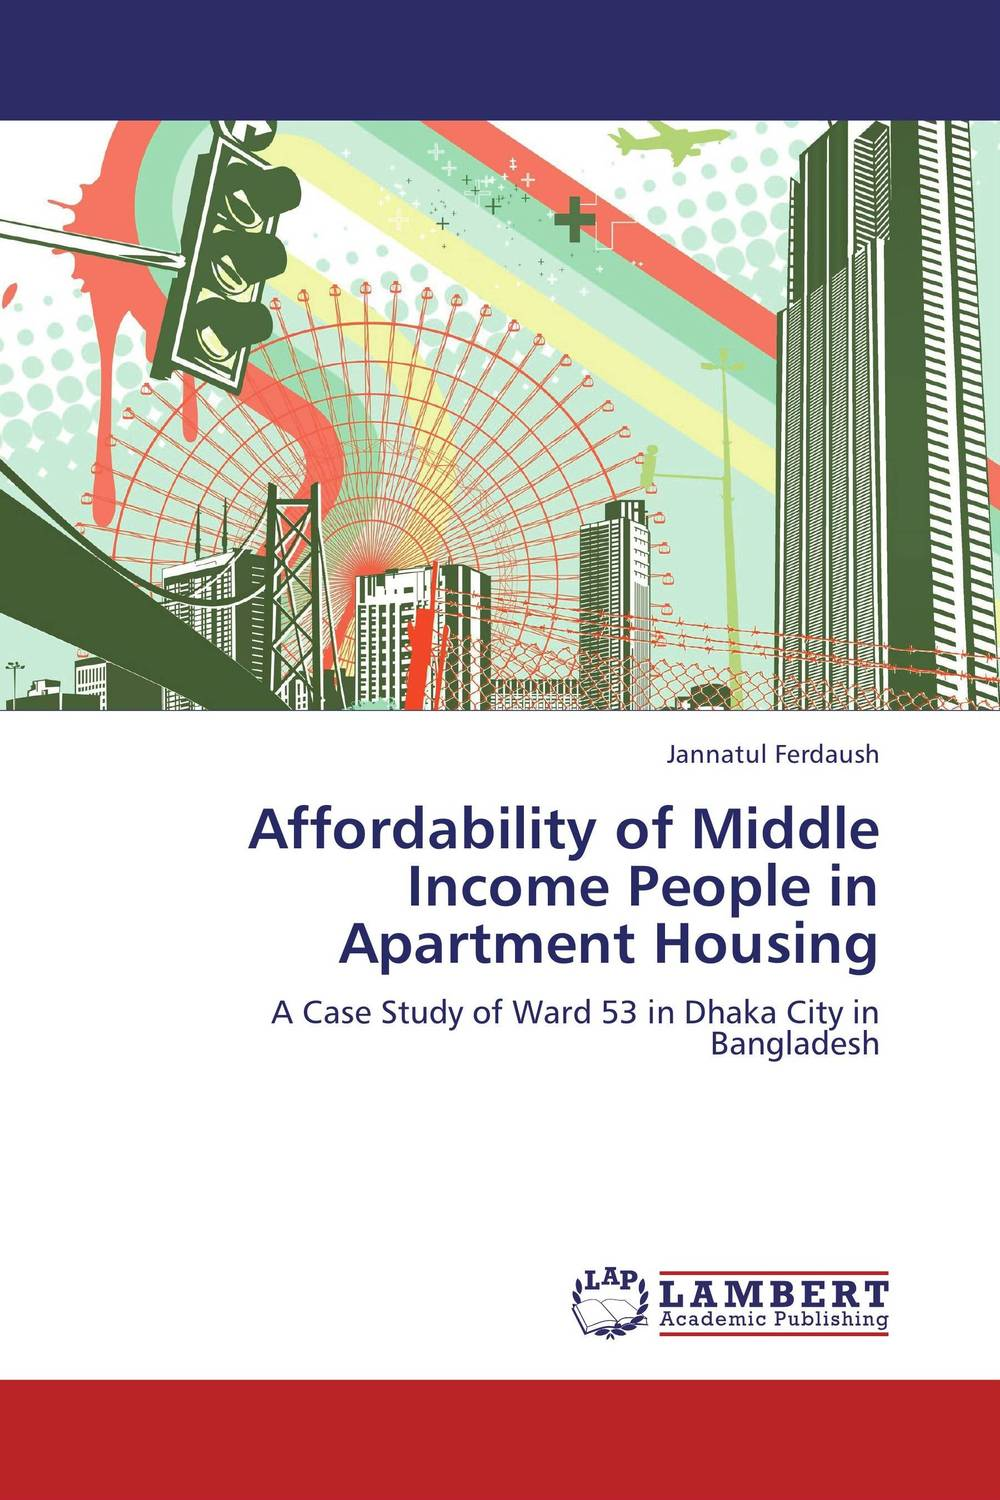 Affordability of Middle Income People in Apartment Housing kenneth rosen d investing in income properties the big six formula for achieving wealth in real estate